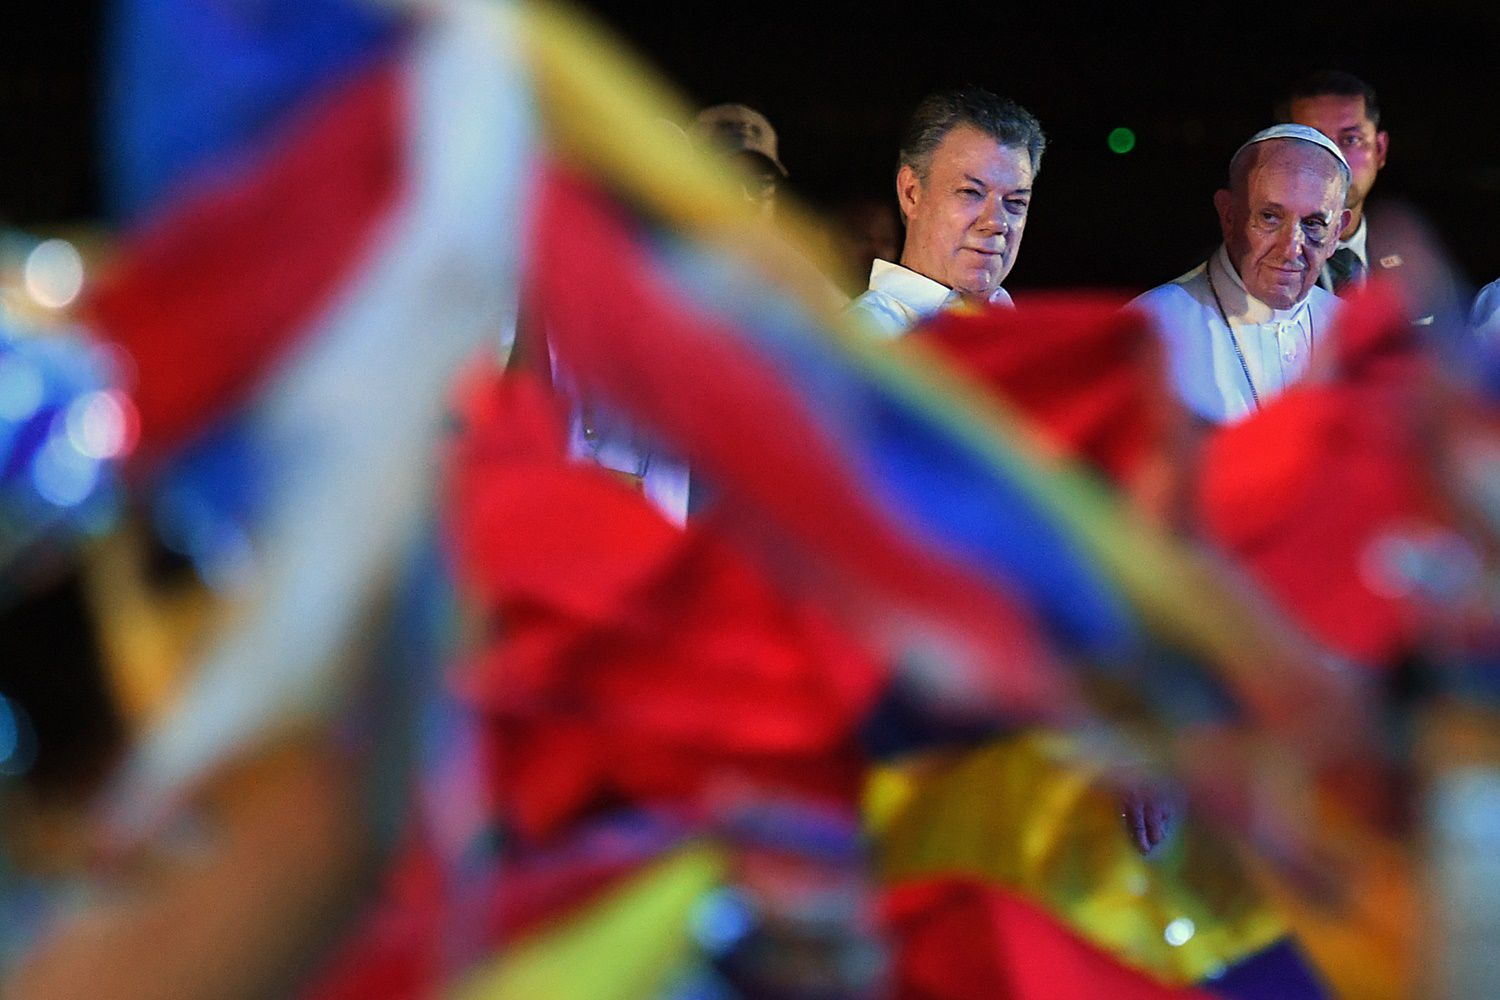 "Pope Francis (R) and Colombia's President Juan Manuel Santos attend a farewell ceremony at the Rafael Nunez airport in Cartagena on September 10, 2017.  Pope Francis prayed Sunday for a peaceful end to Venezuela's ""grave crisis"" which has left scores dead, as he wrapped up a tour to support peace in neighboring Colombia. / AFP PHOTO / Luis Acosta        (Photo credit should read LUIS ACOSTA/AFP/Getty Images)"